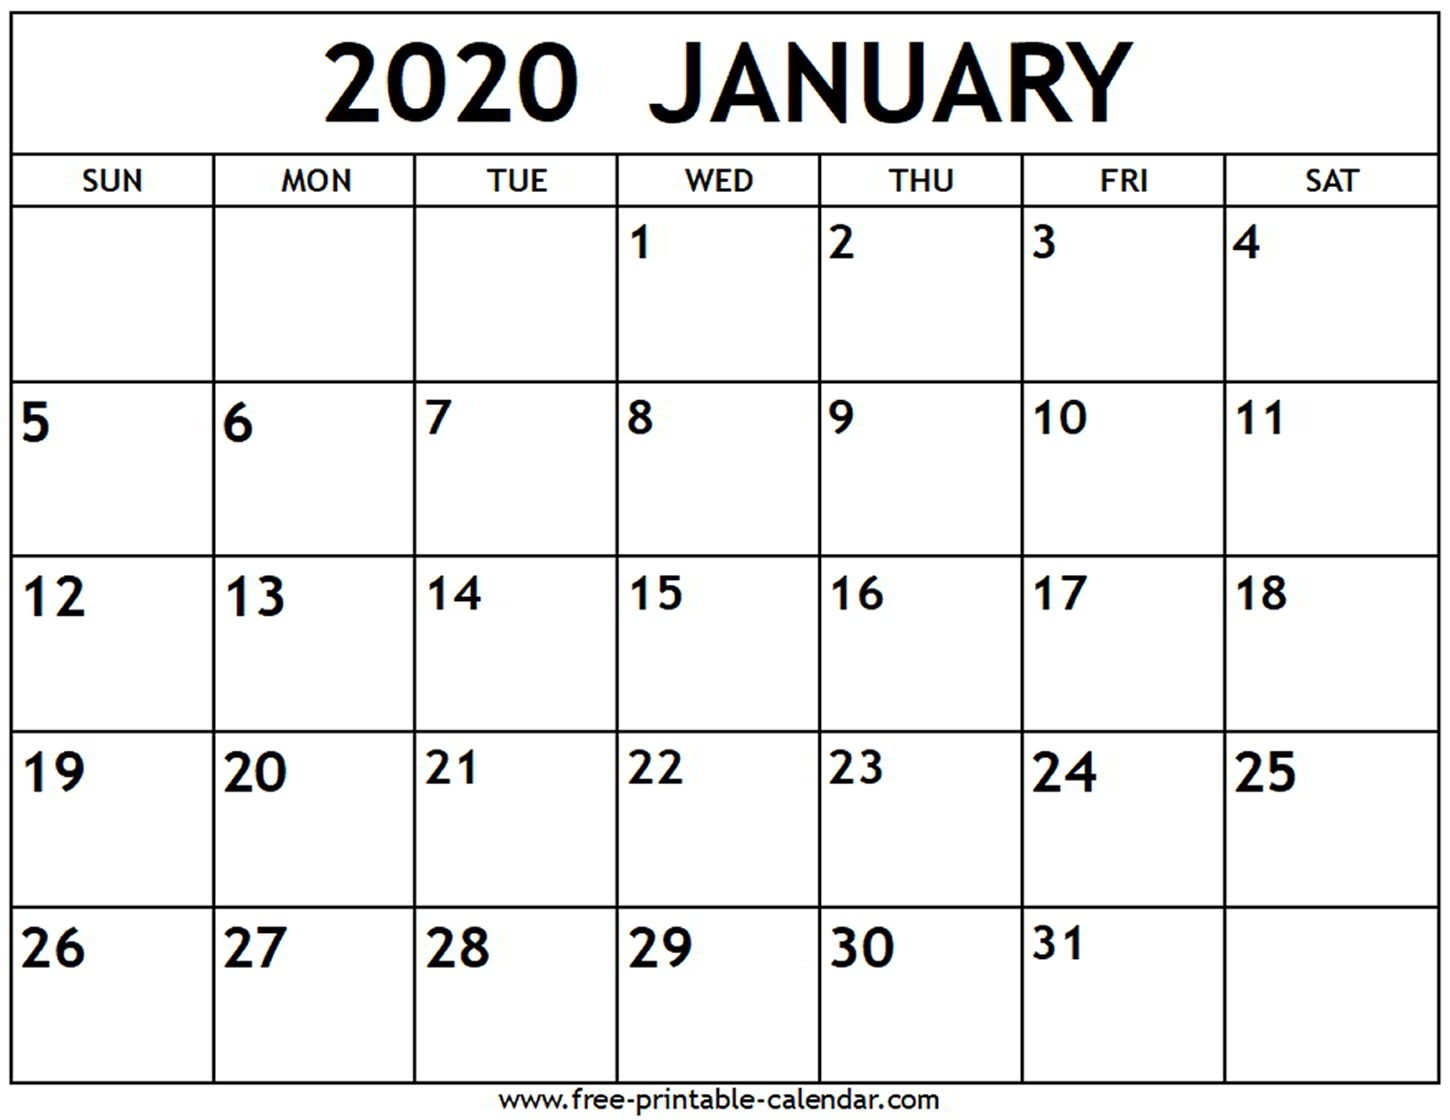 January 2020 Calendar - Free-Printable-Calendar-Month Of January 2020 Calendar